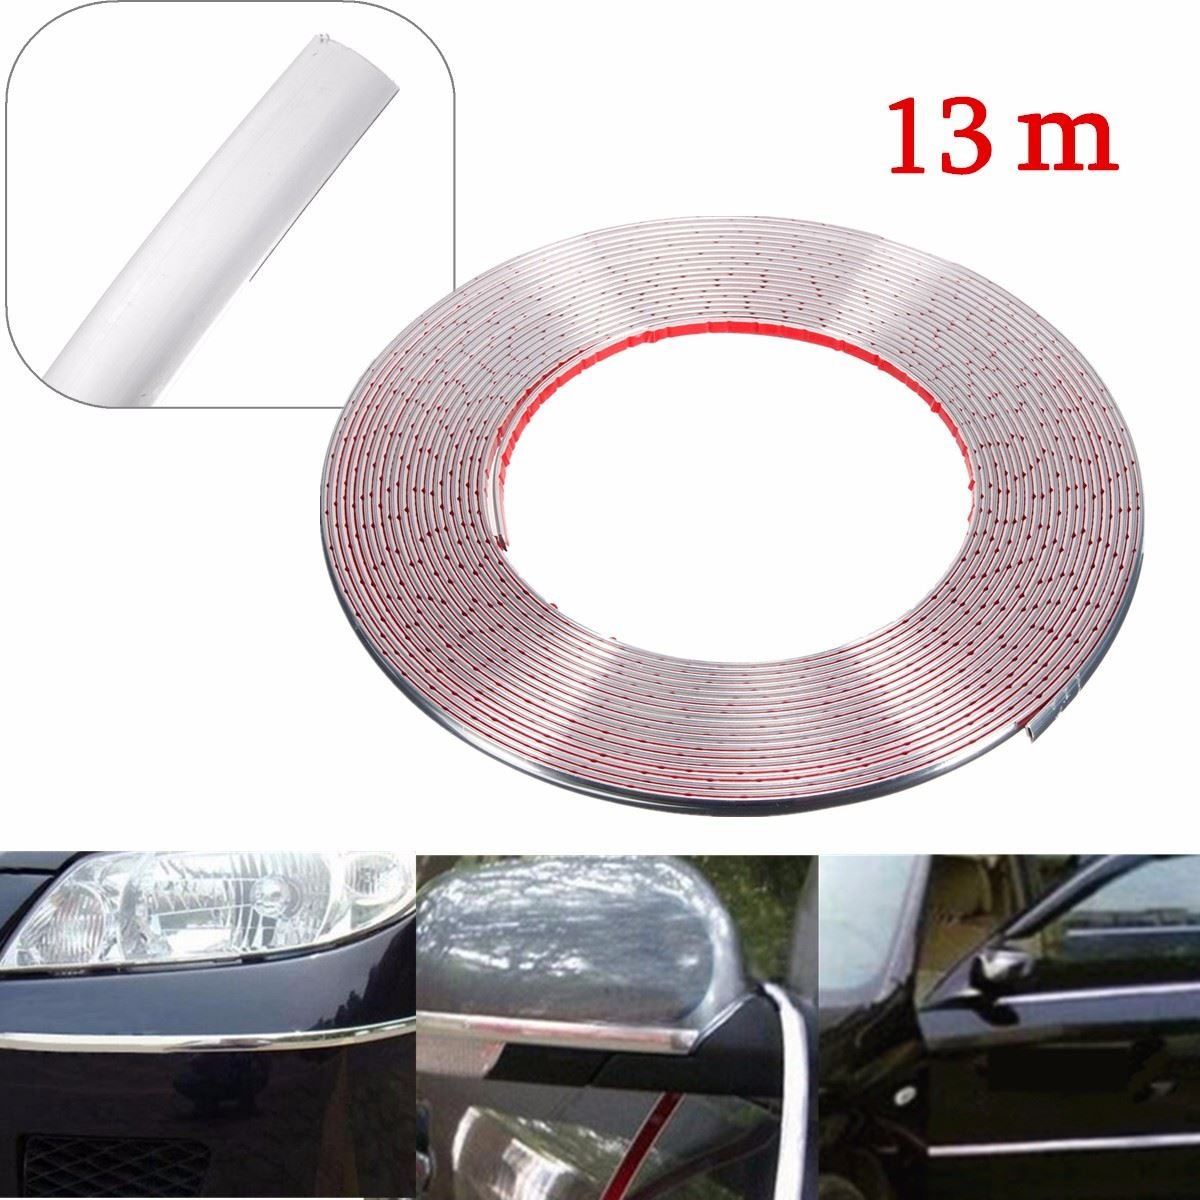 MONNY 13m 8mm Silver Chrome Car Door Egde Guard Body Styling Moulding Strip Adhesive Trim